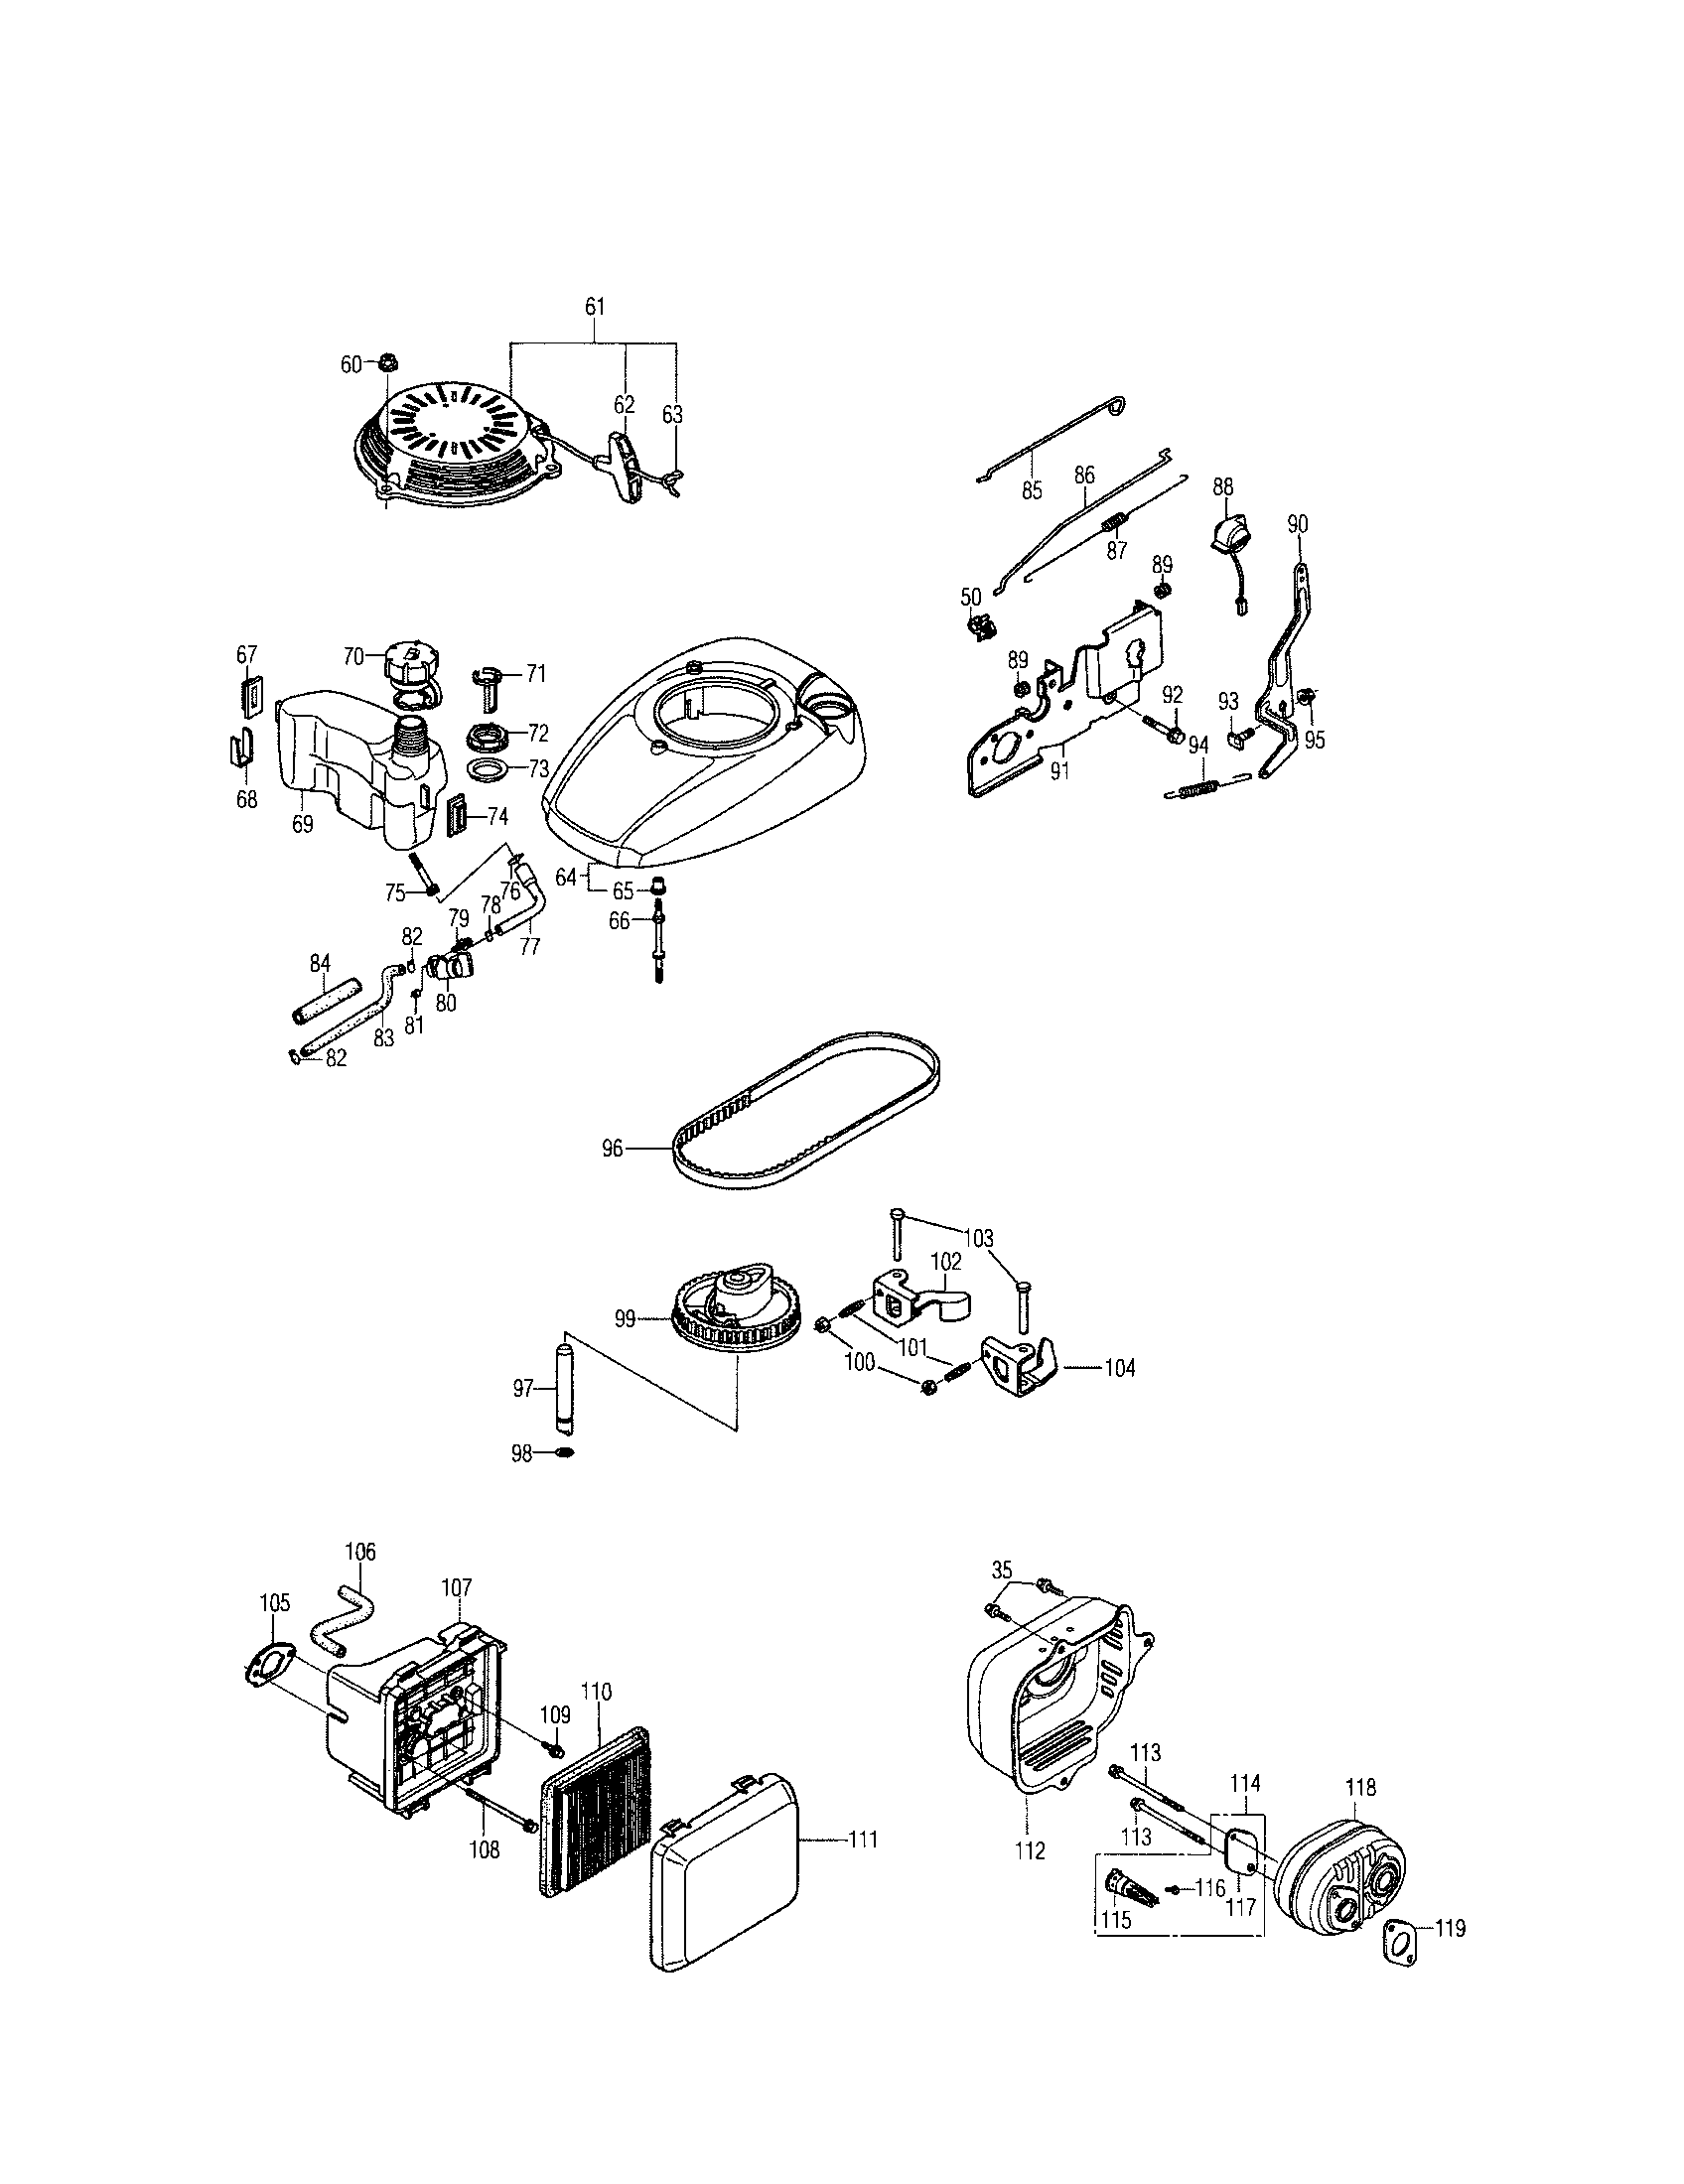 medium resolution of honda gcv160 lan5r fuel tank air cleaner diagram